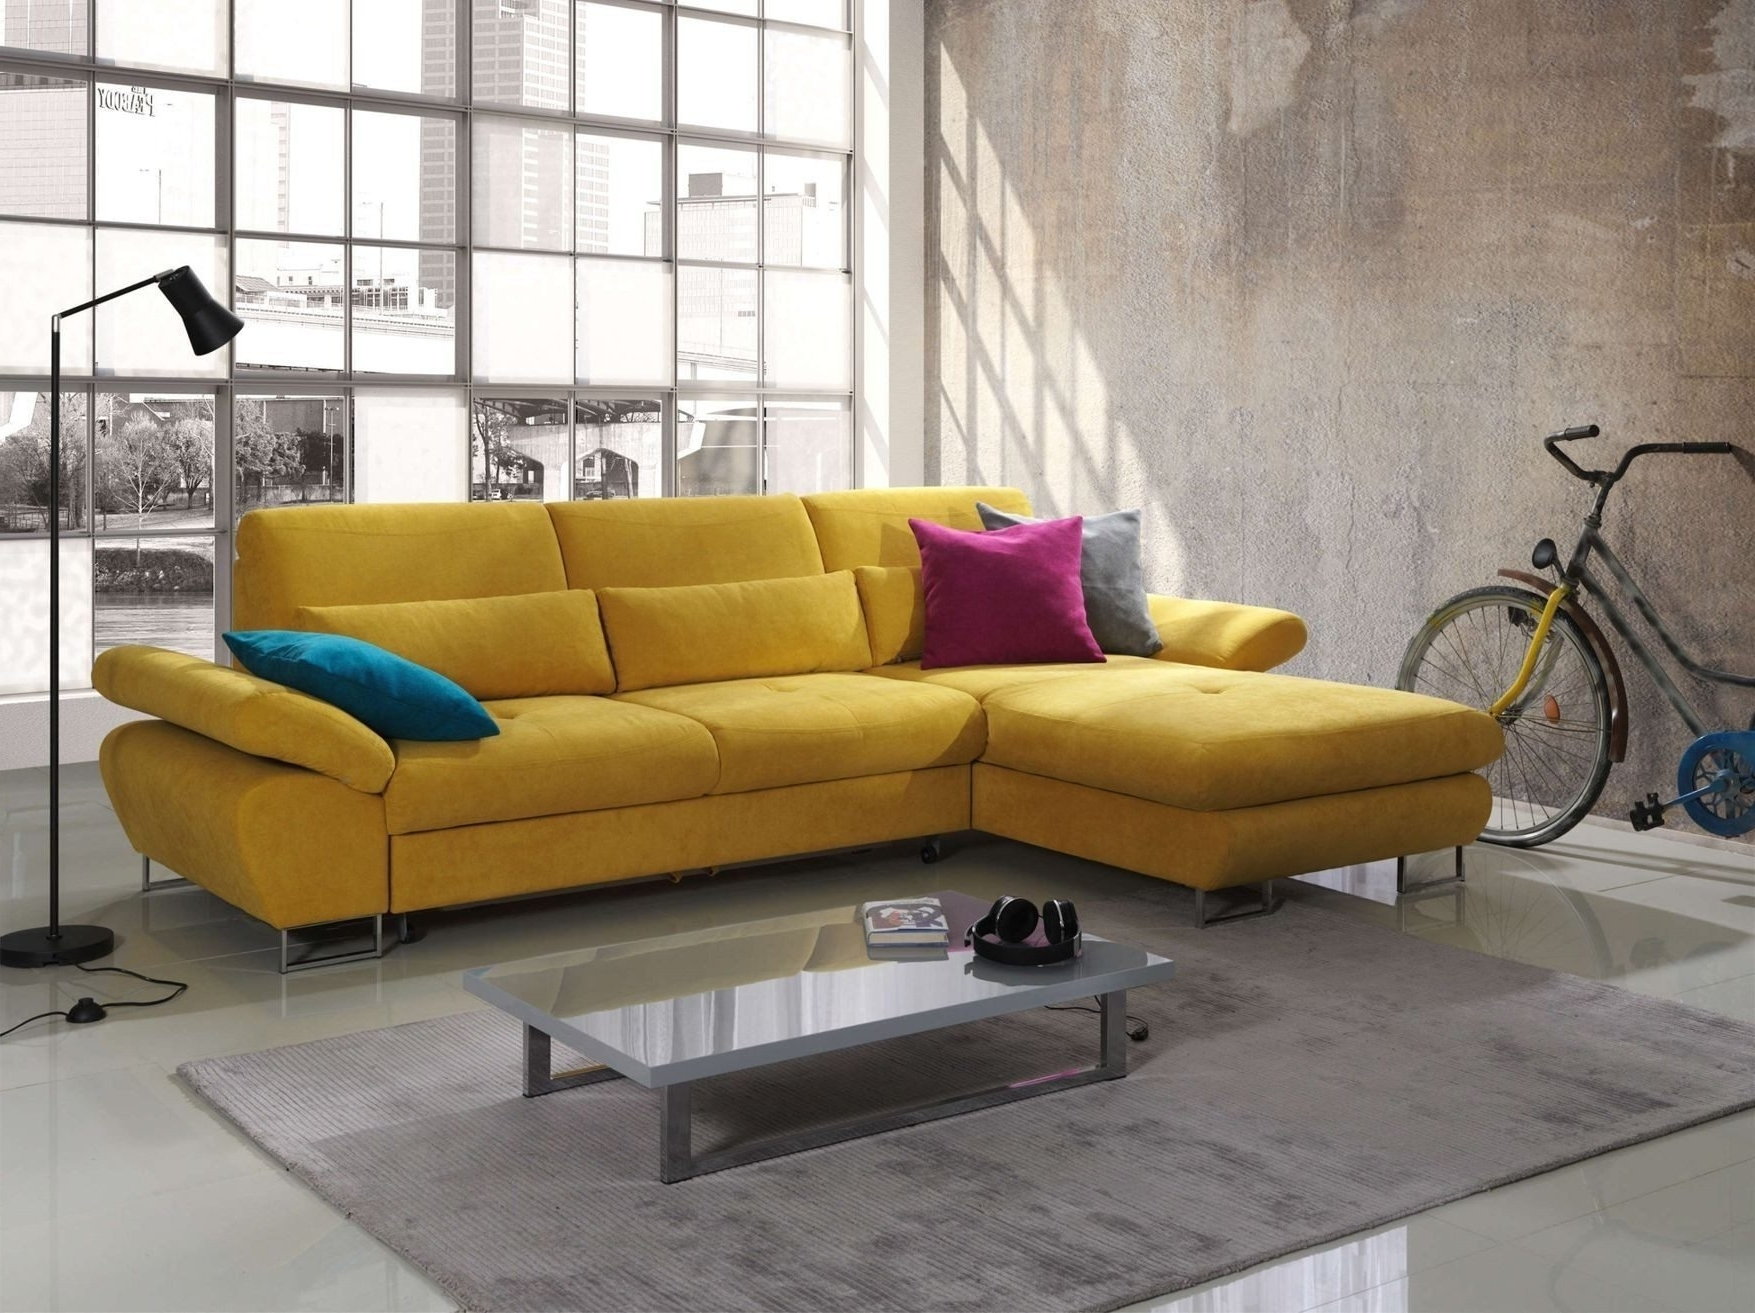 Apartment Sectional Sofas With Chaise Intended For Fashionable Stunning Apartment Size Sectional Sofa With Chaise Ideas (View 4 of 20)